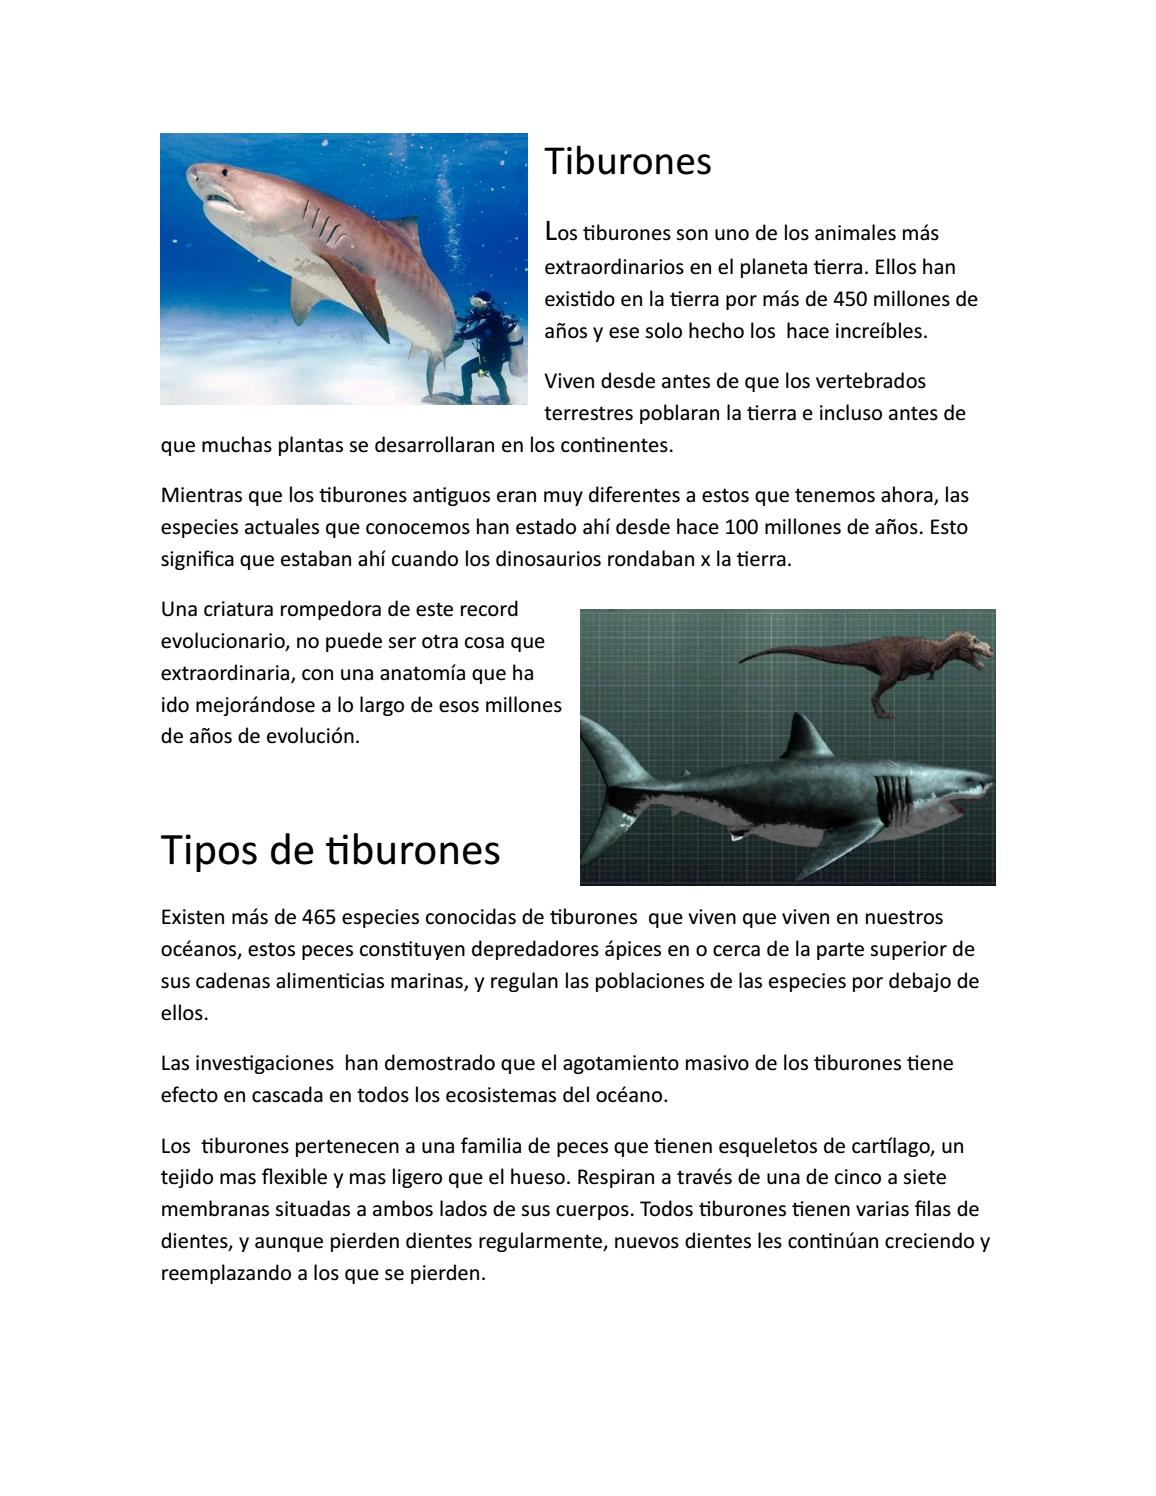 Tiburones by Qngel - issuu